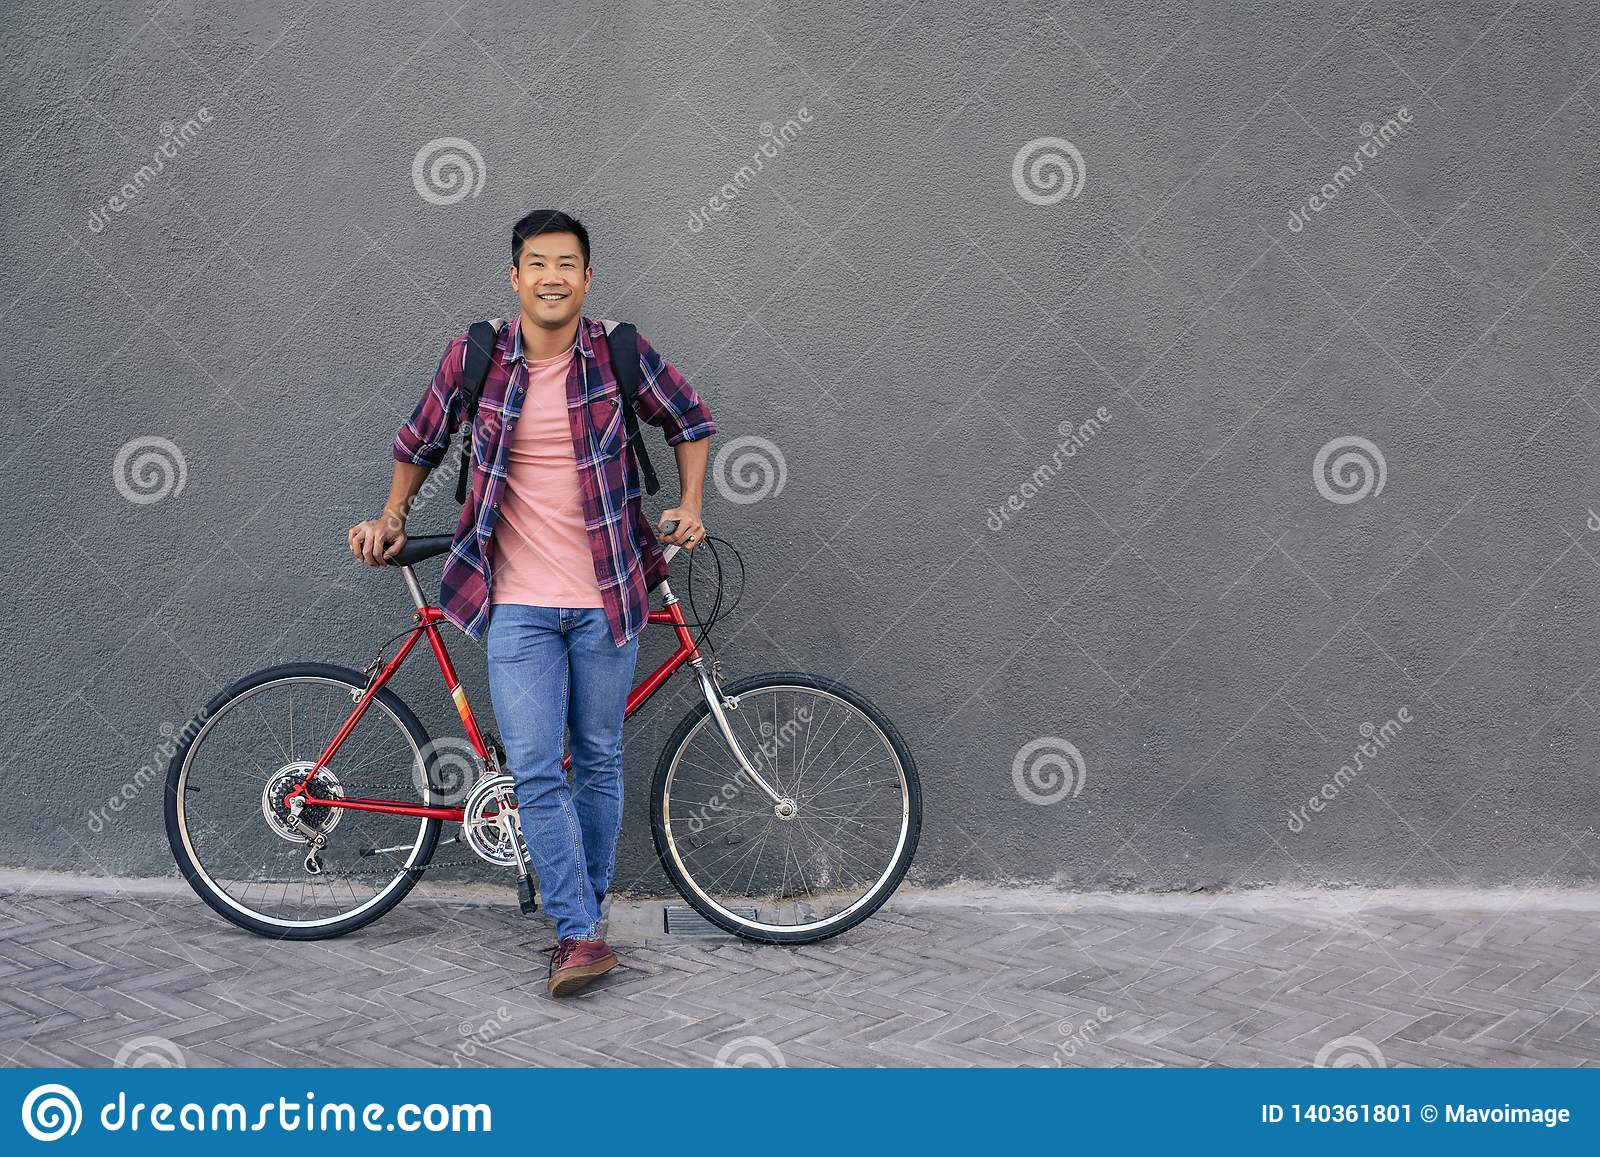 5b6526770 Portrait of a smiling young Asian man in a plaid shirt standing with his  bike in front of a gray wall in the city